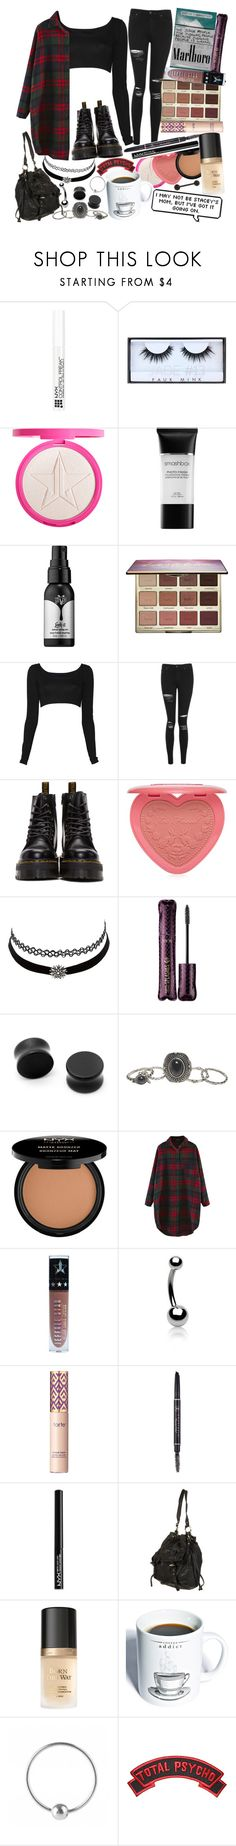 """""""With nights like these, who needs the days? I shut my eyes and sleep them away, I'm on the dark side of your room with the notches on your bedpost."""" by thelyricsmatter ❤ liked on Polyvore featuring NYX, Huda Beauty, Smashbox, Kat Von D, tarte, Nadia Tarr, Topshop, Dr. Martens, Too Faced Cosmetics and Charlotte Russe"""